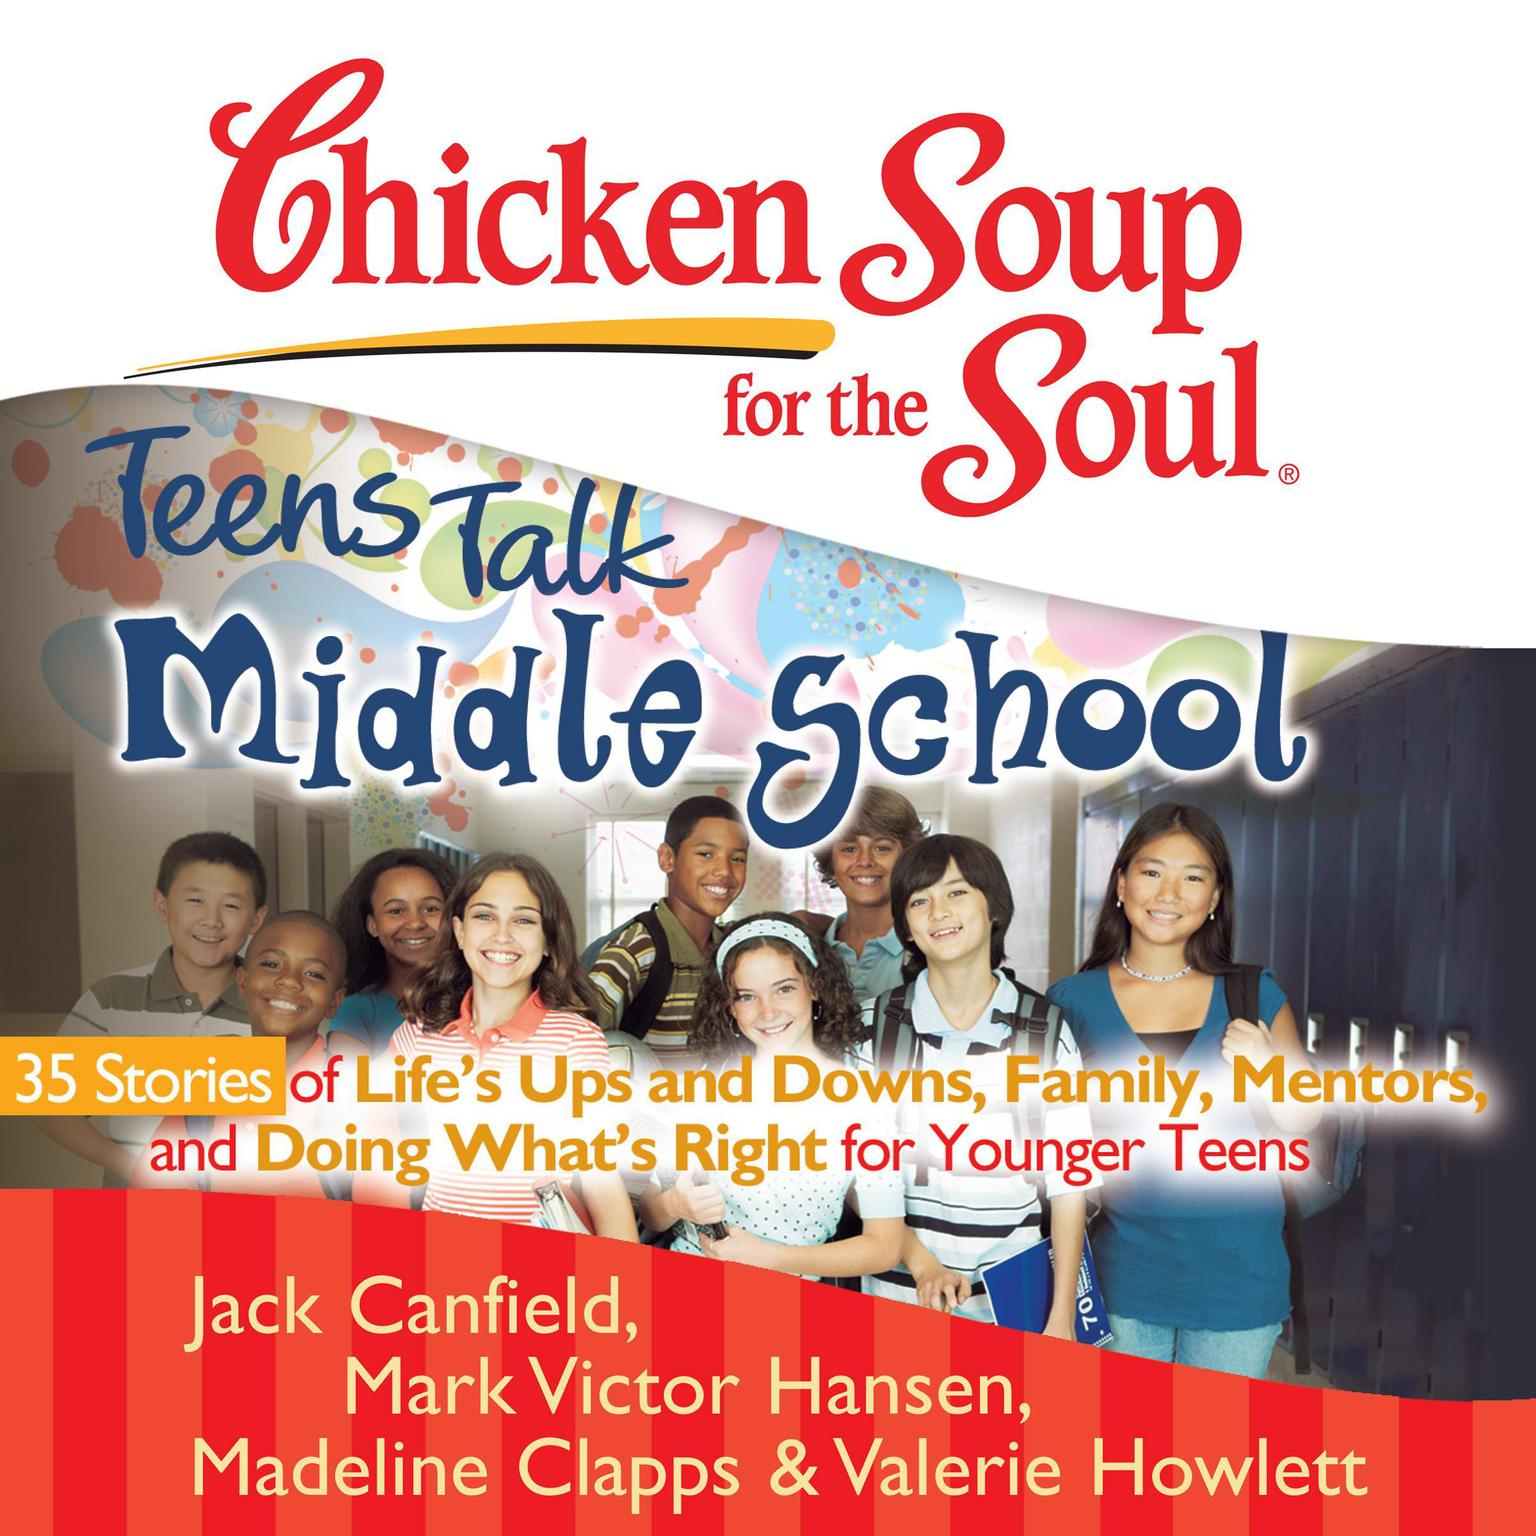 Printable Chicken Soup for the Soul: Teens Talk Middle School - 35 Stories of Life's Ups and Downs, Family, Mentors, and Doing What's Righ Audiobook Cover Art